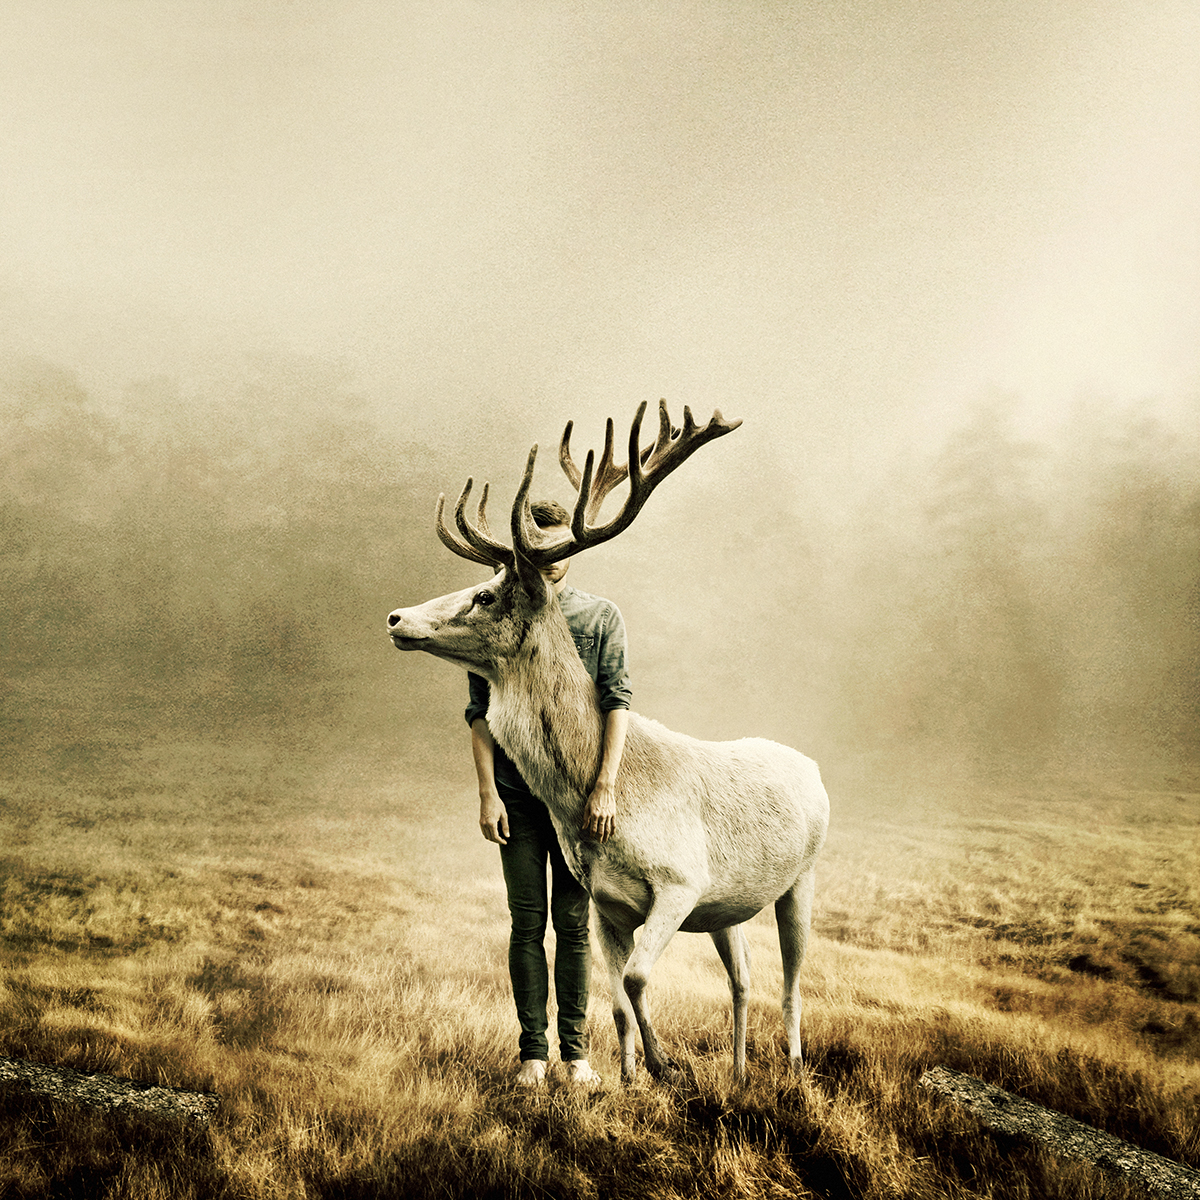 Martin Stranka, Wait a Little Longer, 2015, Archival Pigment Print, Edition 2 of 25,  19 3/5 × 19 3/5 in (50 x 50 cm)